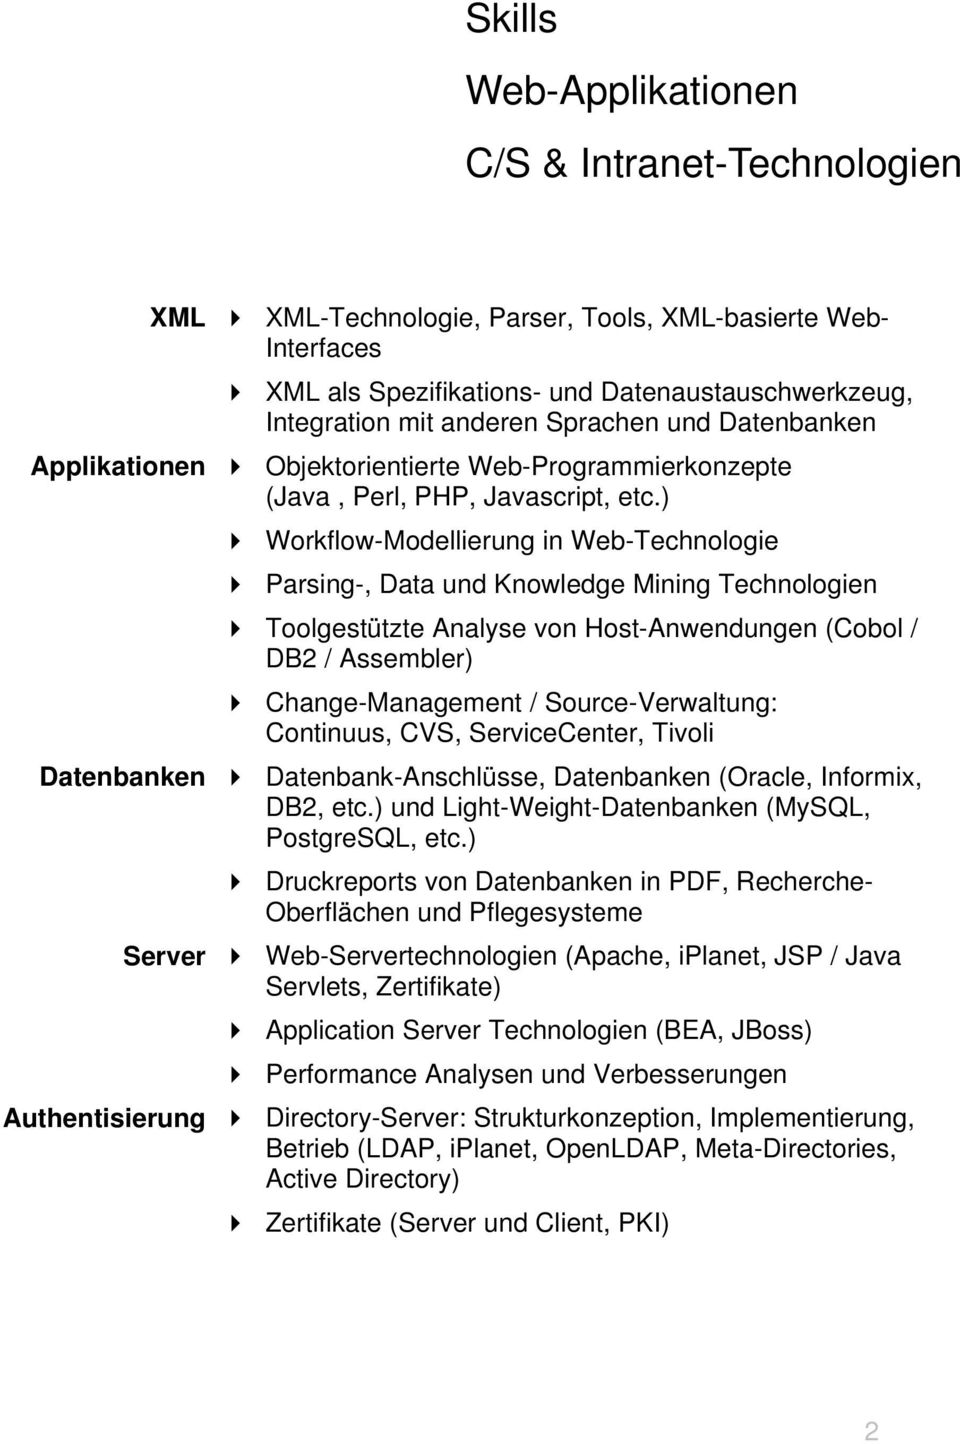 ) Workflow-Modellierung in Web-Technologie Parsing-, Data und Knowledge Mining Technologien Toolgestützte Analyse von Host-Anwendungen (Cobol / DB2 / Assembler) Change-Management / Source-Verwaltung: